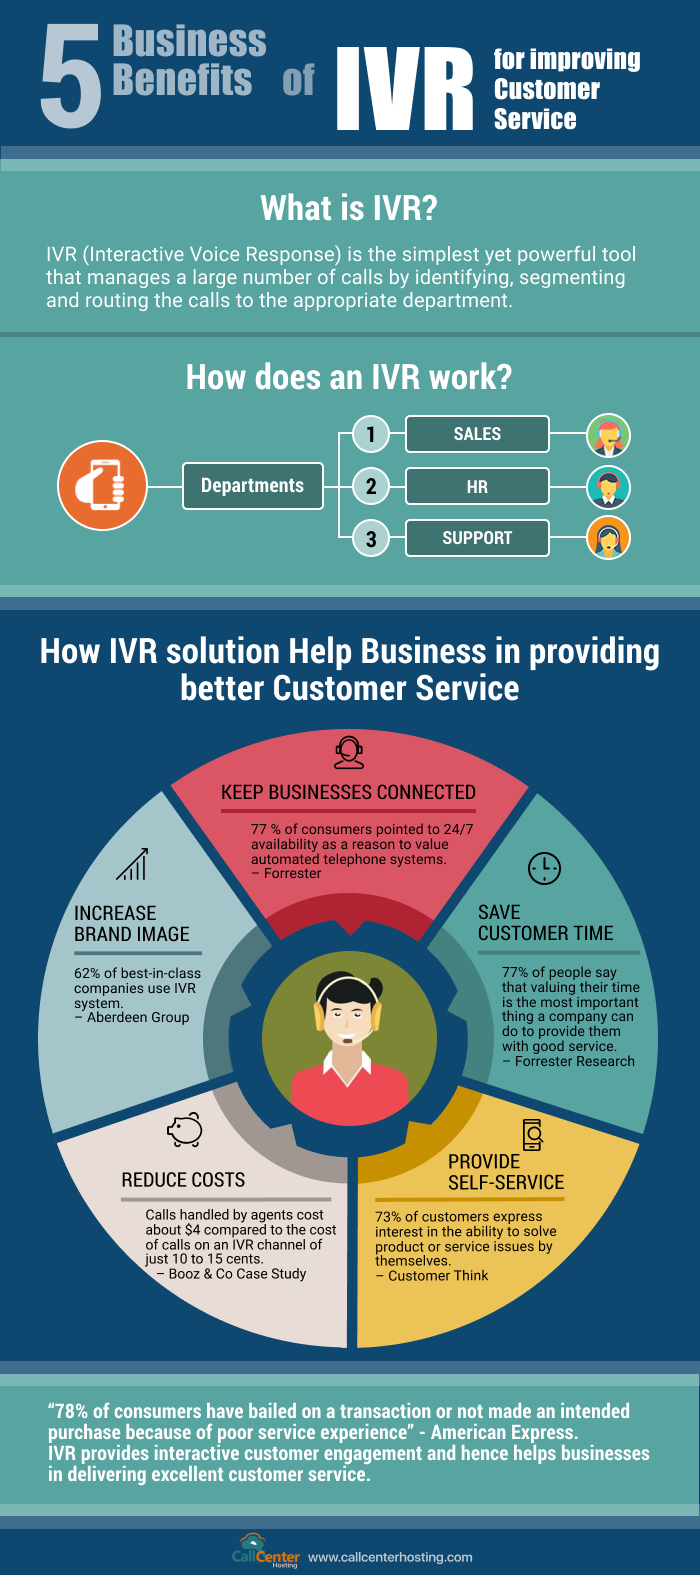 5-business-benefits-ivr